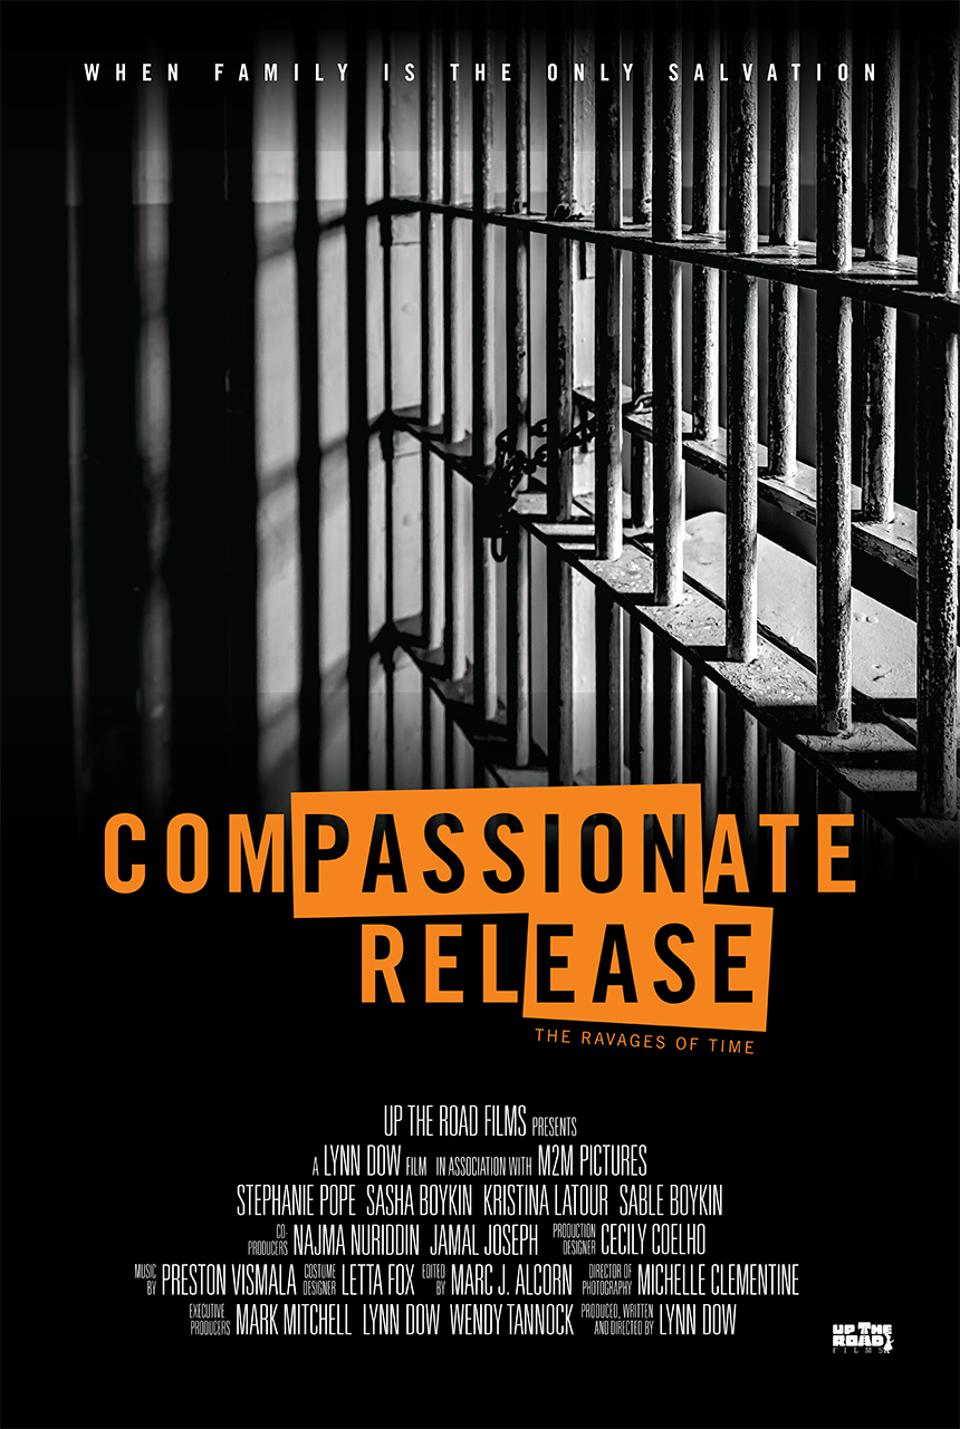 Compassionate Release: The Ravages of Time